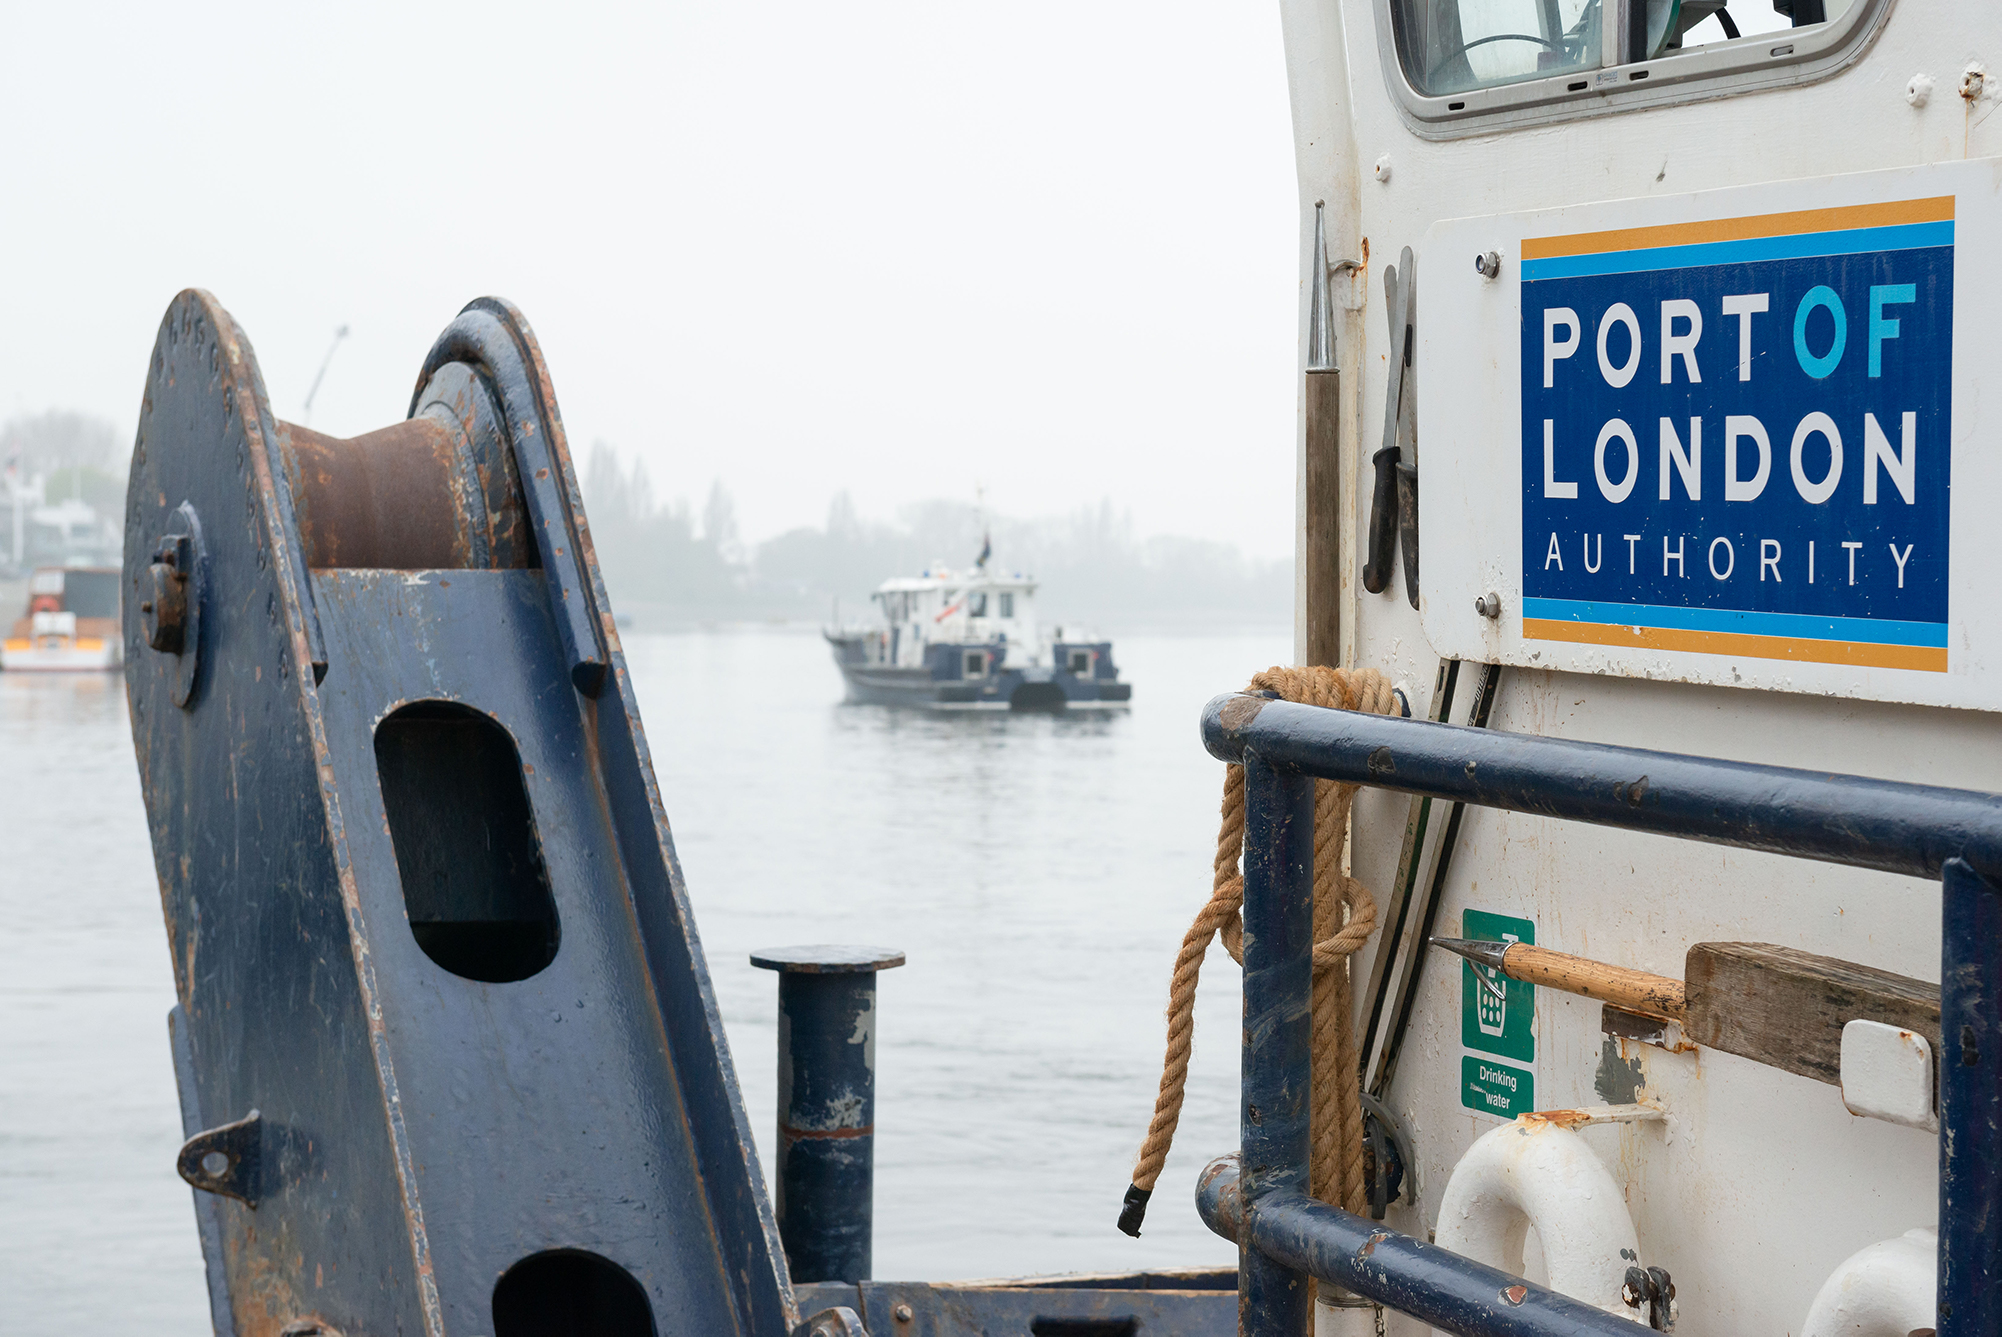 Port of London Authority to more than halve emissions by 2025